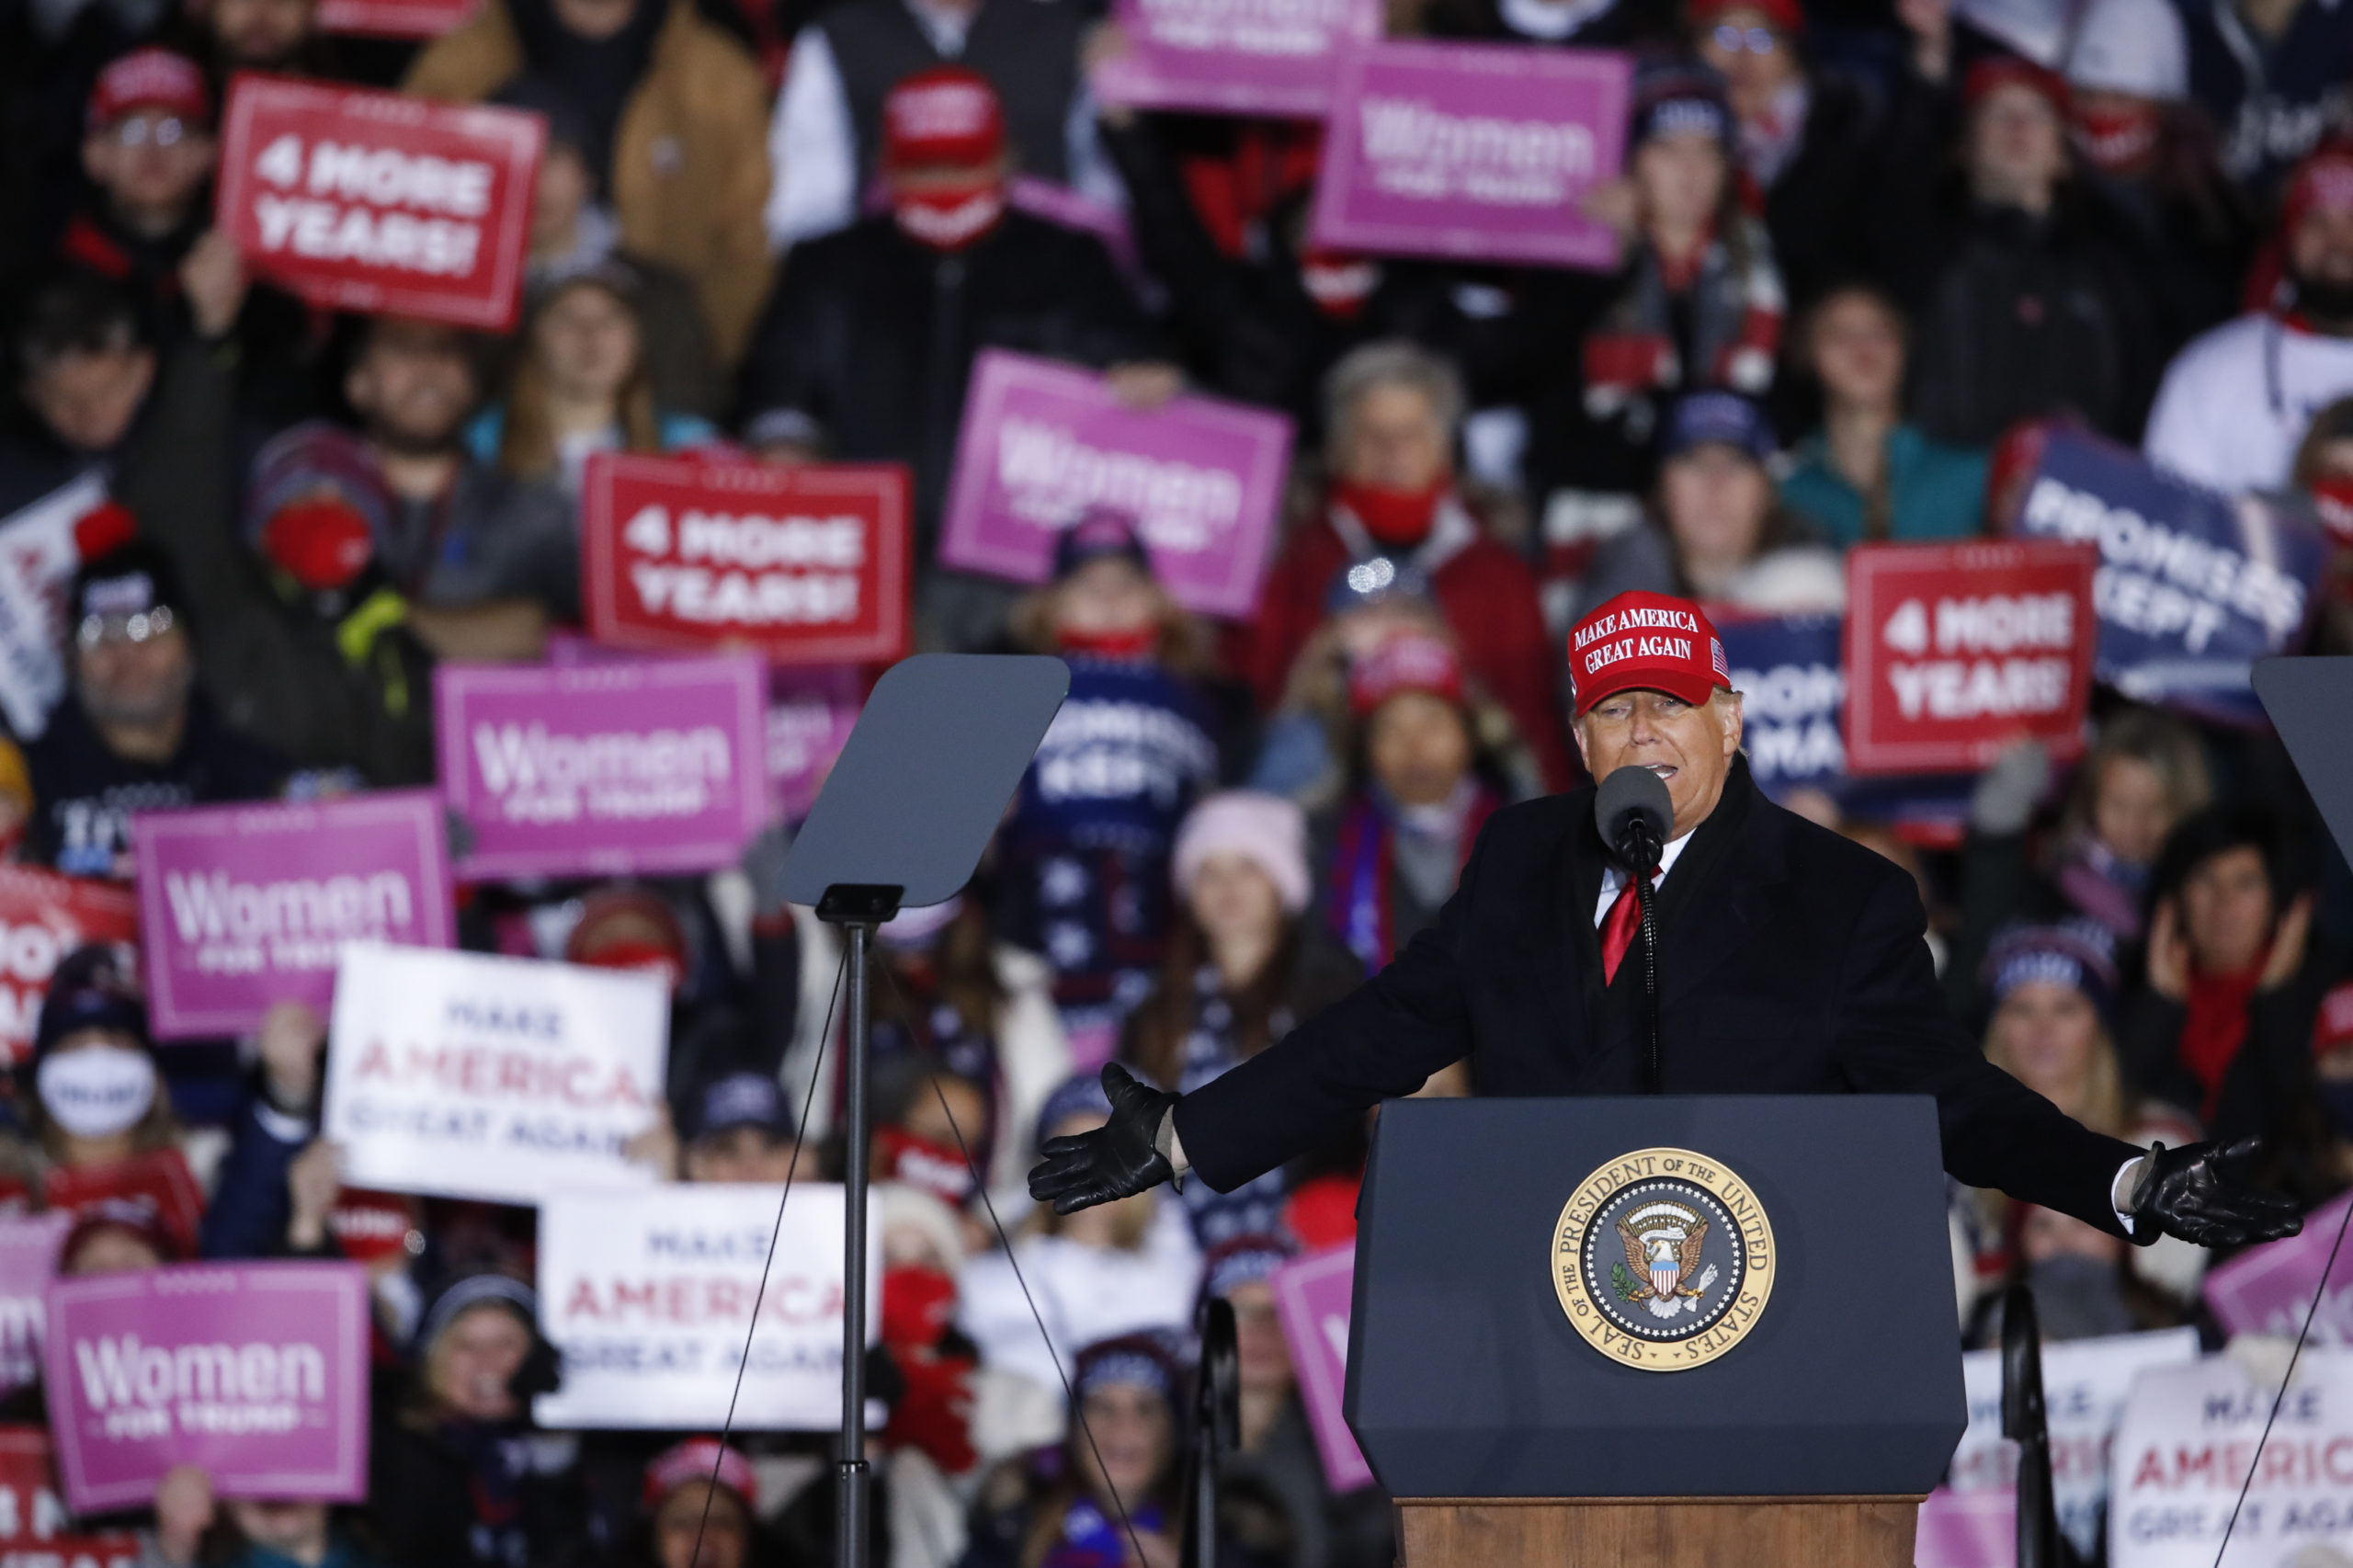 GRAND RAPIDS, MI - NOVEMBER 03: President Donald Trump speaks during a rally on November 3, 2020 in Grand Rapids, Michigan. Trump and Democratic presidential nominee Joe Biden are making last-minute stops in swing states ahead of tomorrow's general election. (Photo by Kamil Krzaczynski/Getty Images)